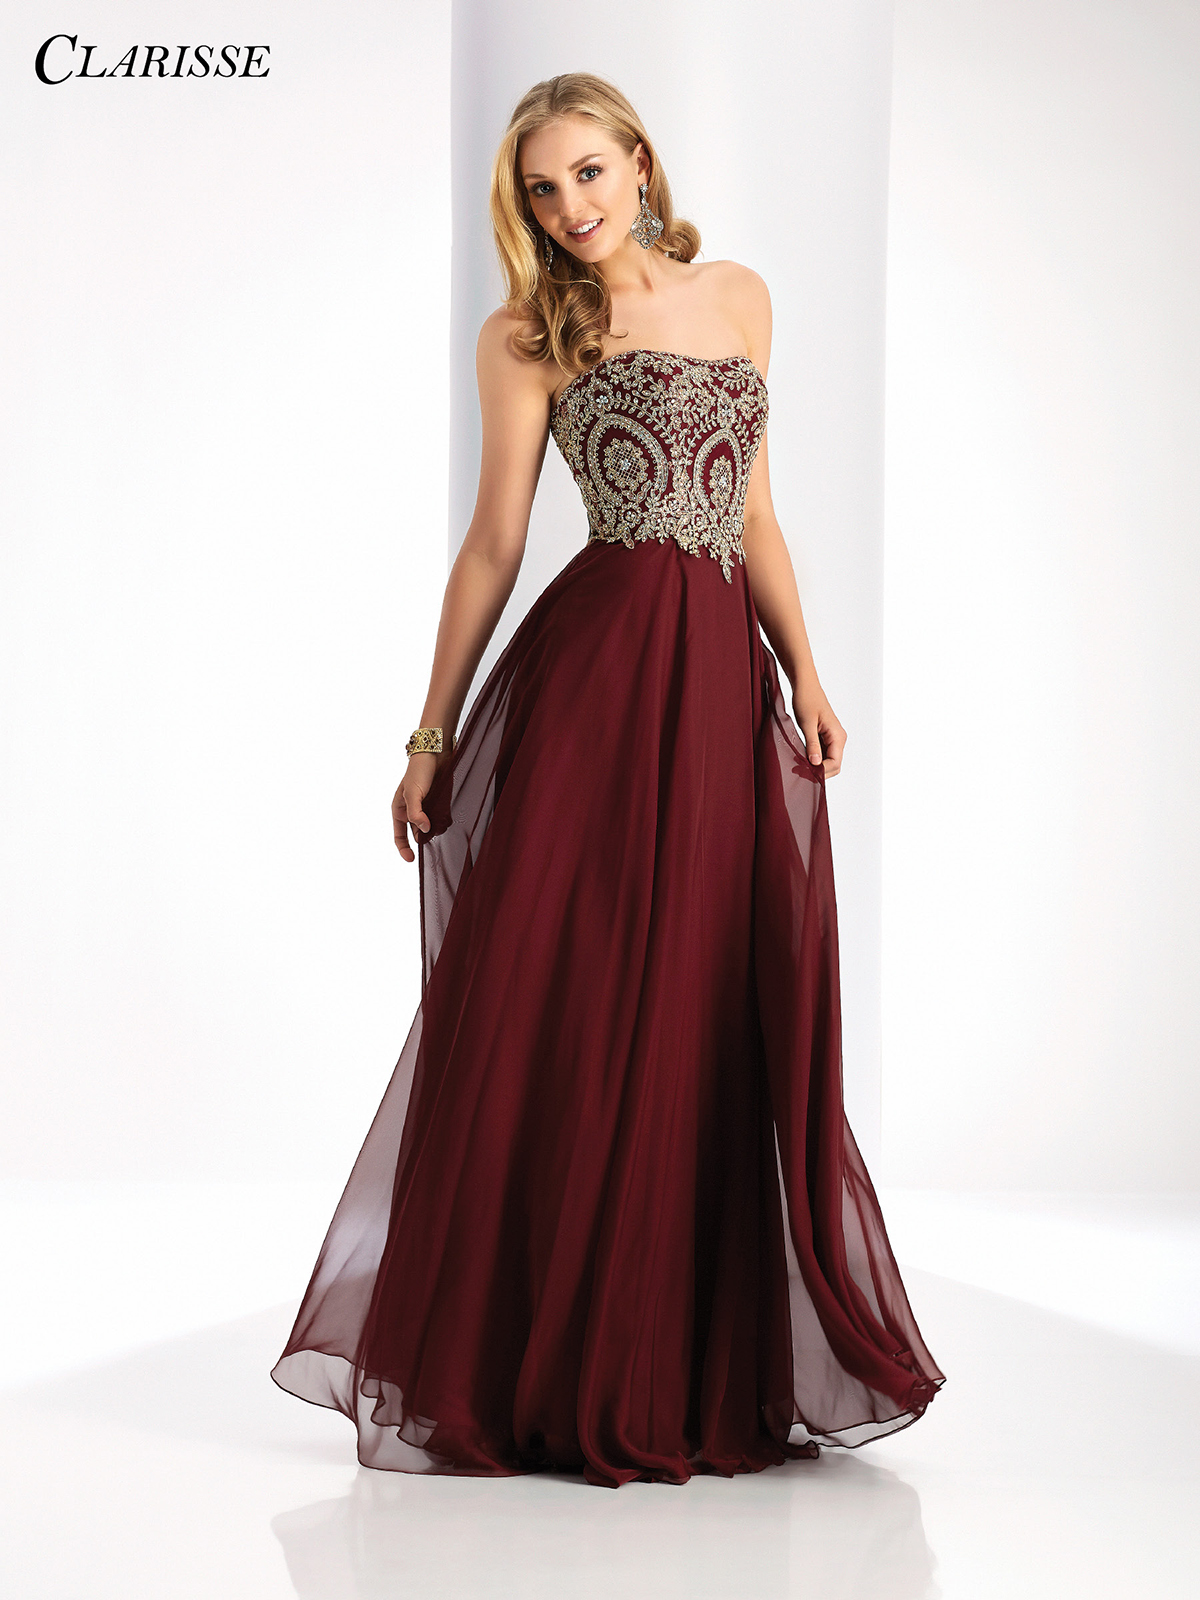 Clarisse Prom Dress 3000 Promgirl Net